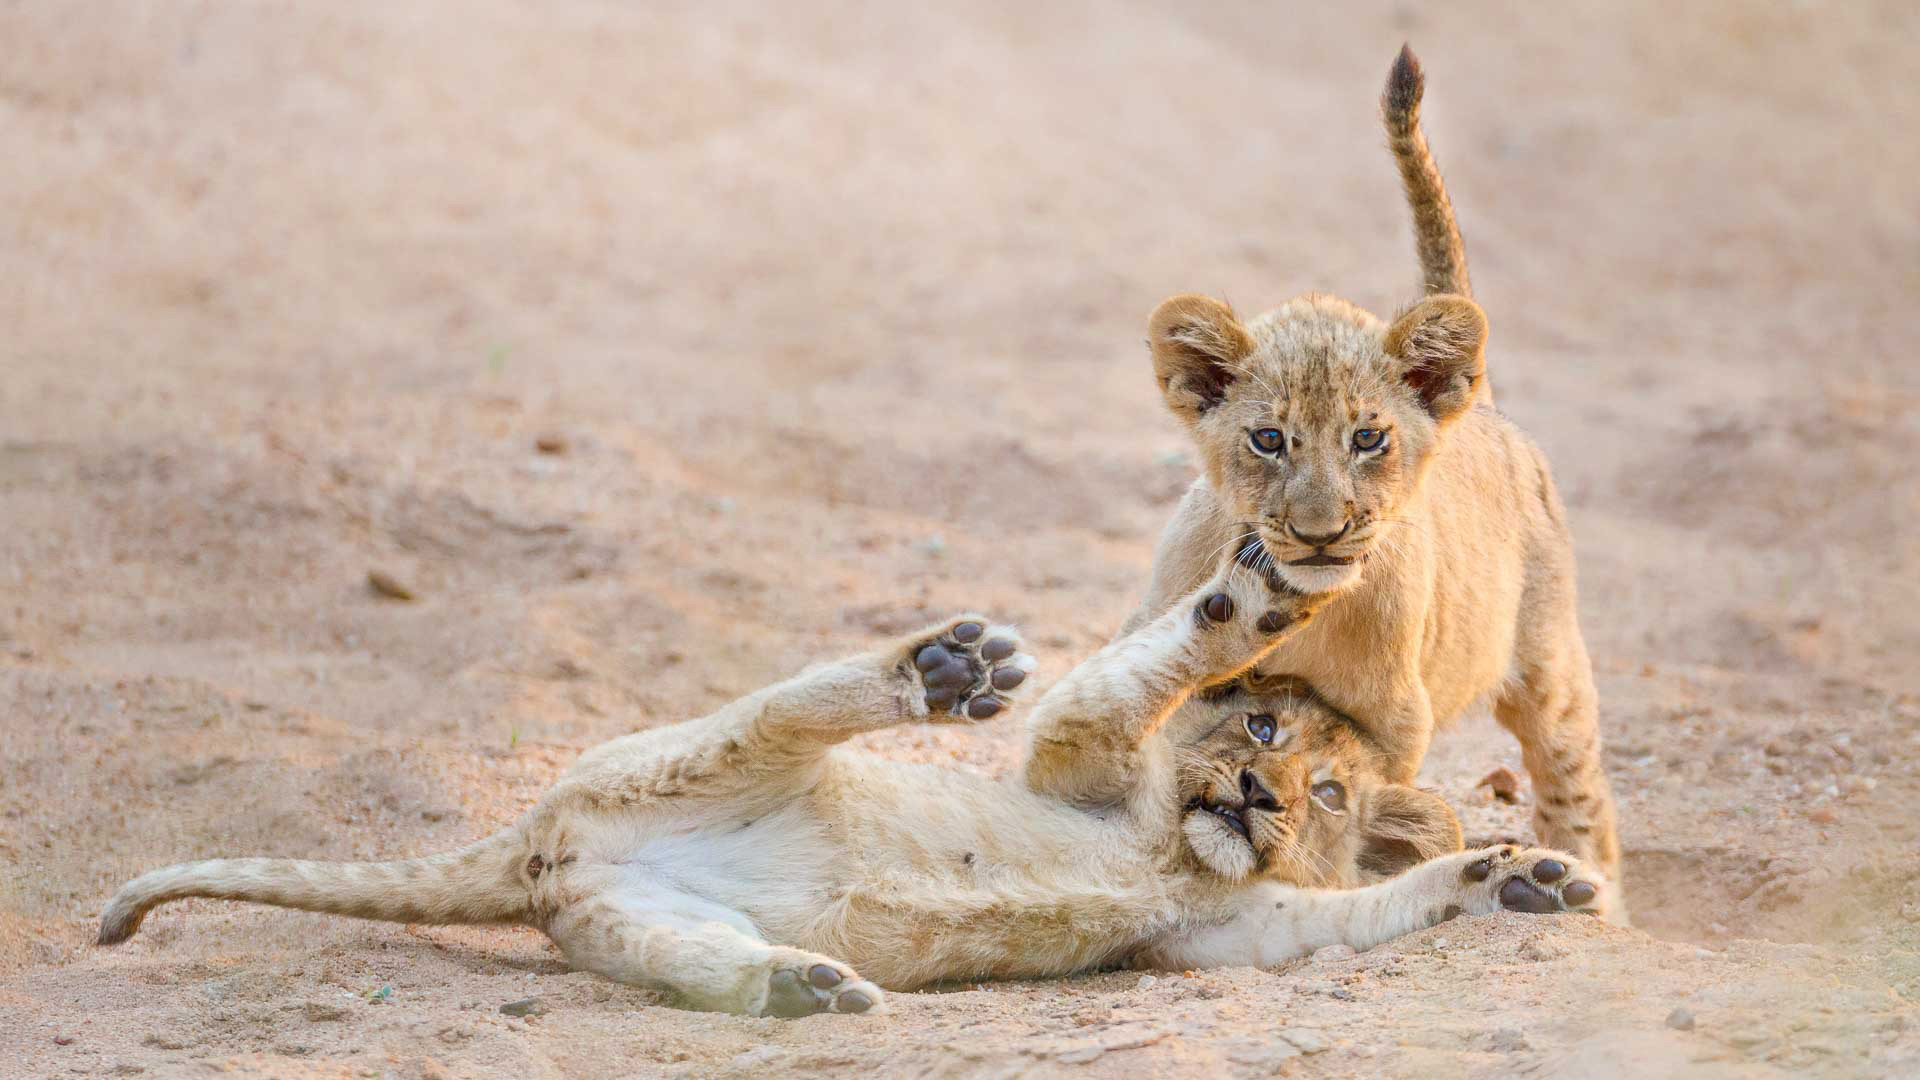 Tanda Tula - lion cubs together in the Greater Kruger, South Africa